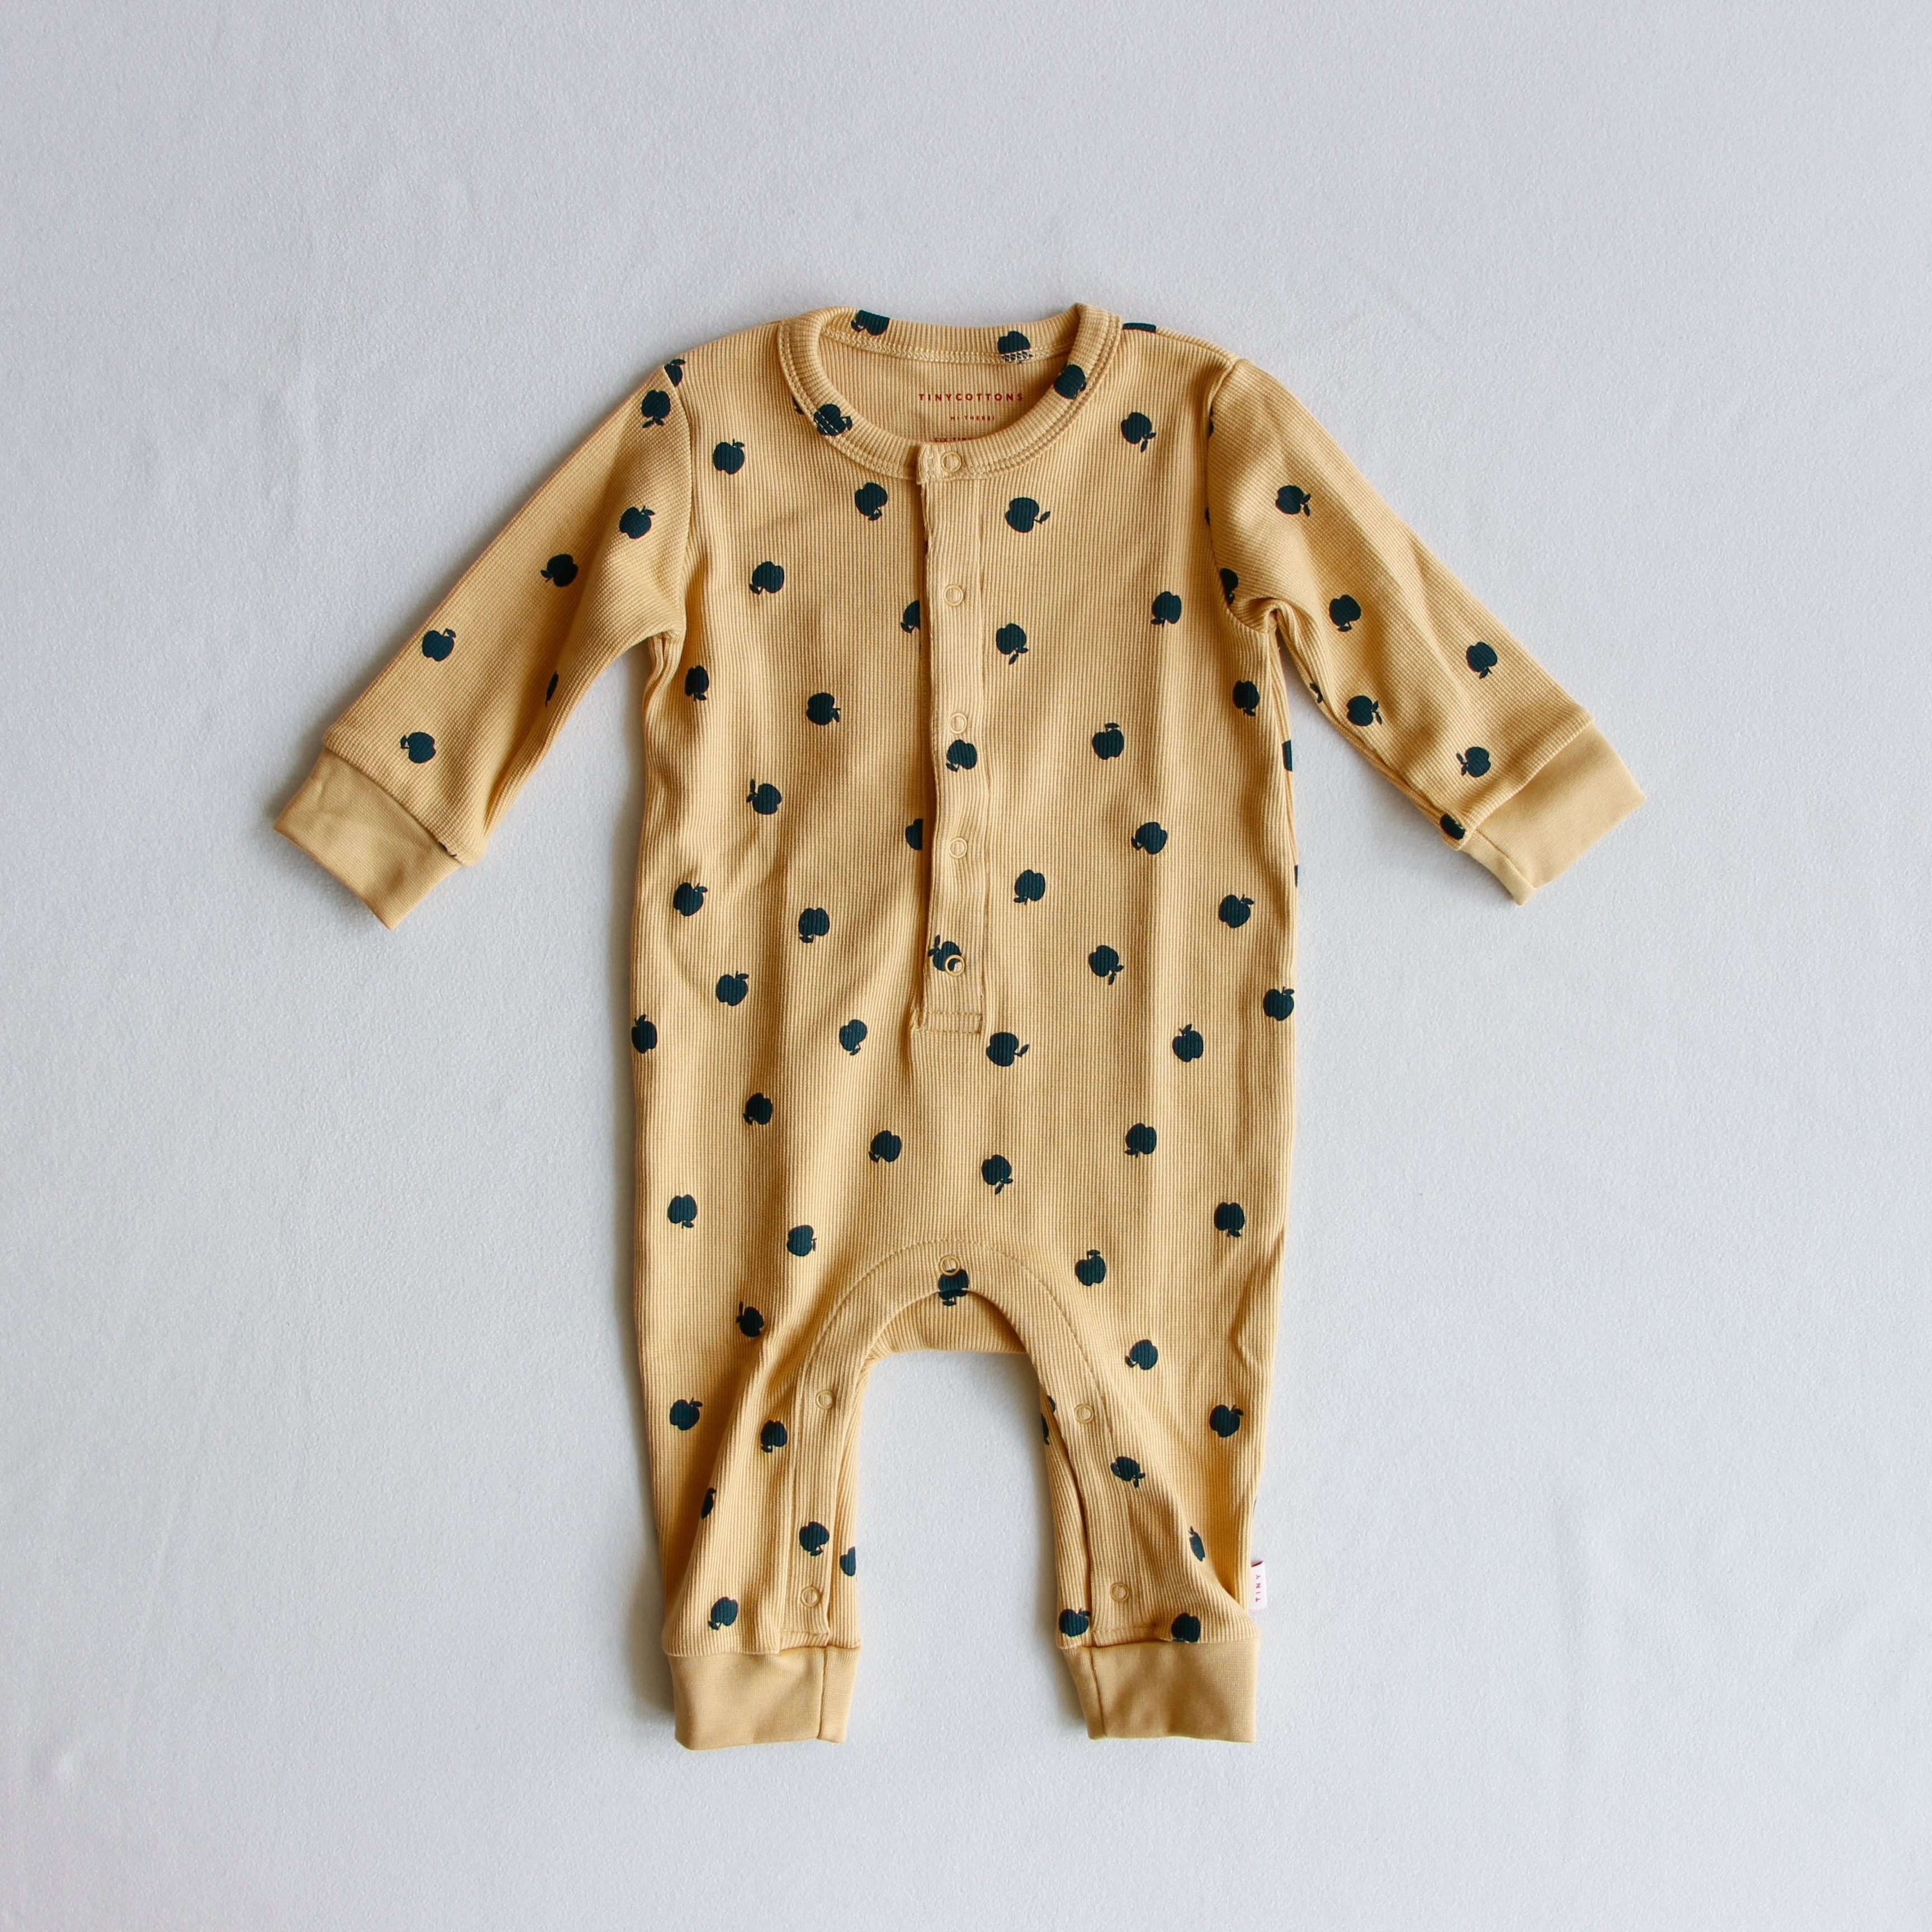 《TINYCOTTONS 2019AW》SMALL APPLES ONE-PIECE / sand × bottle green